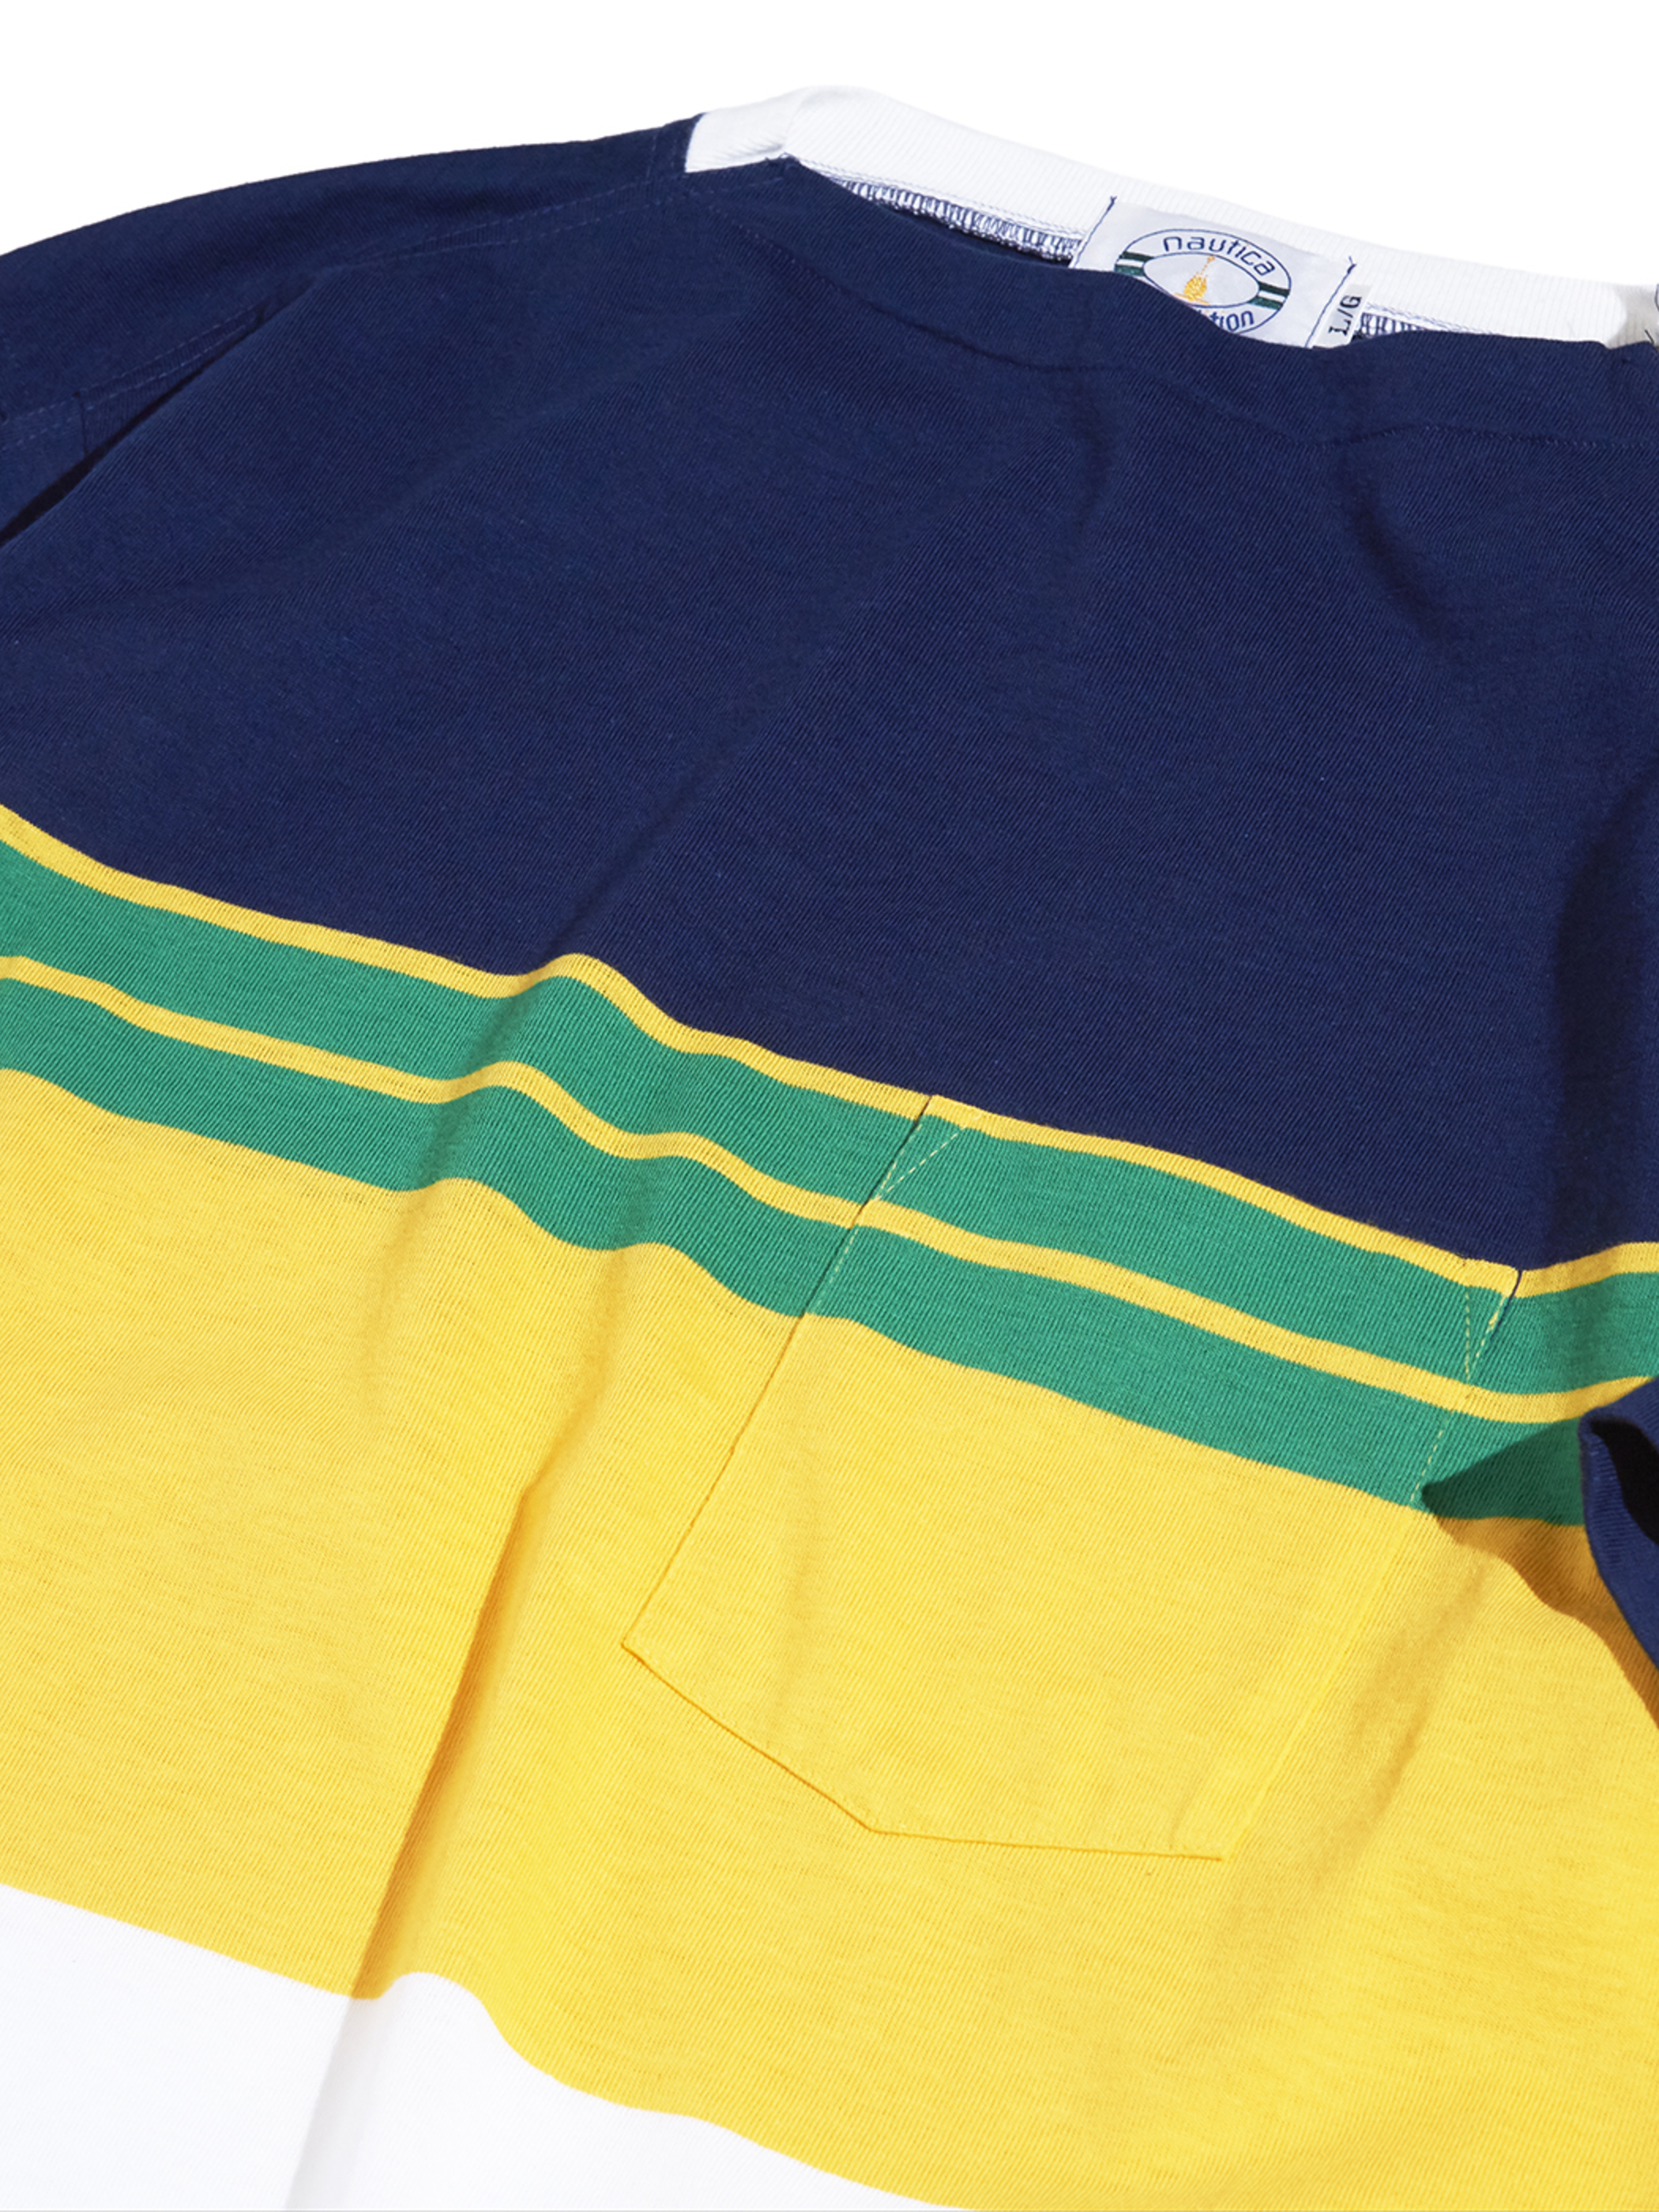 "1990s ""nautica competition"" border tee -NAVY-"